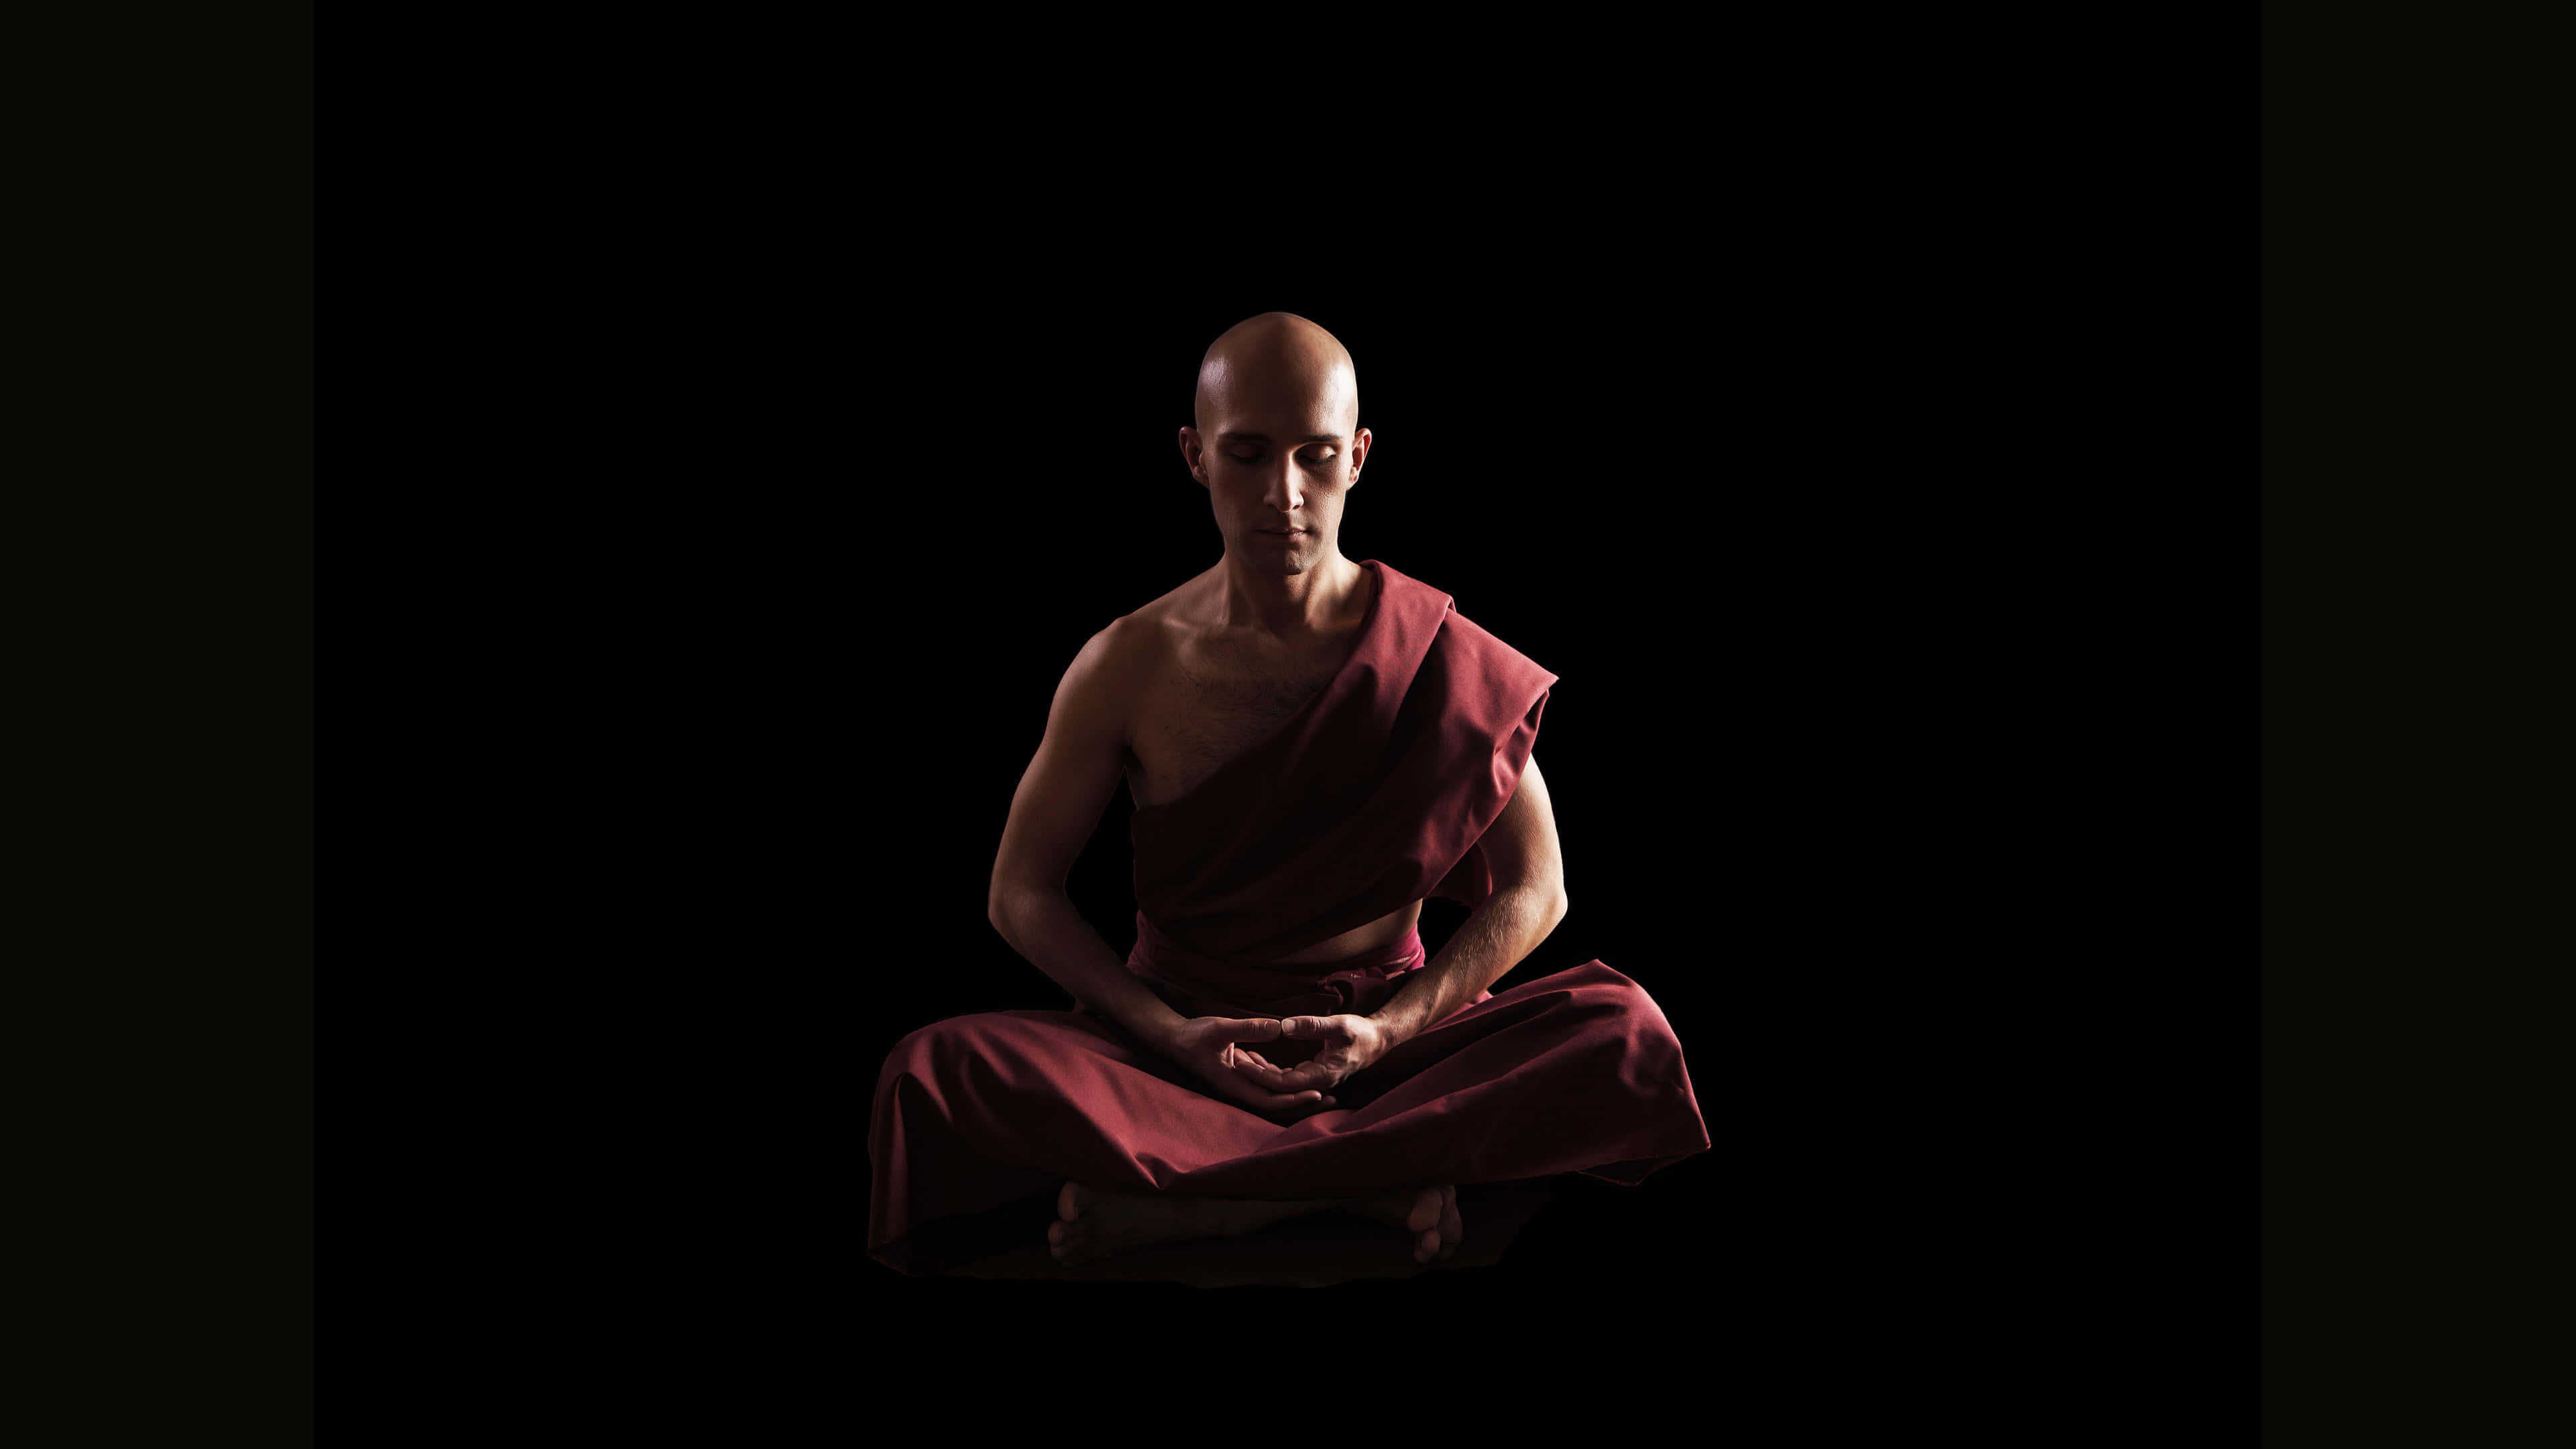 buddhist monk meditating uhd 4k wallpaper